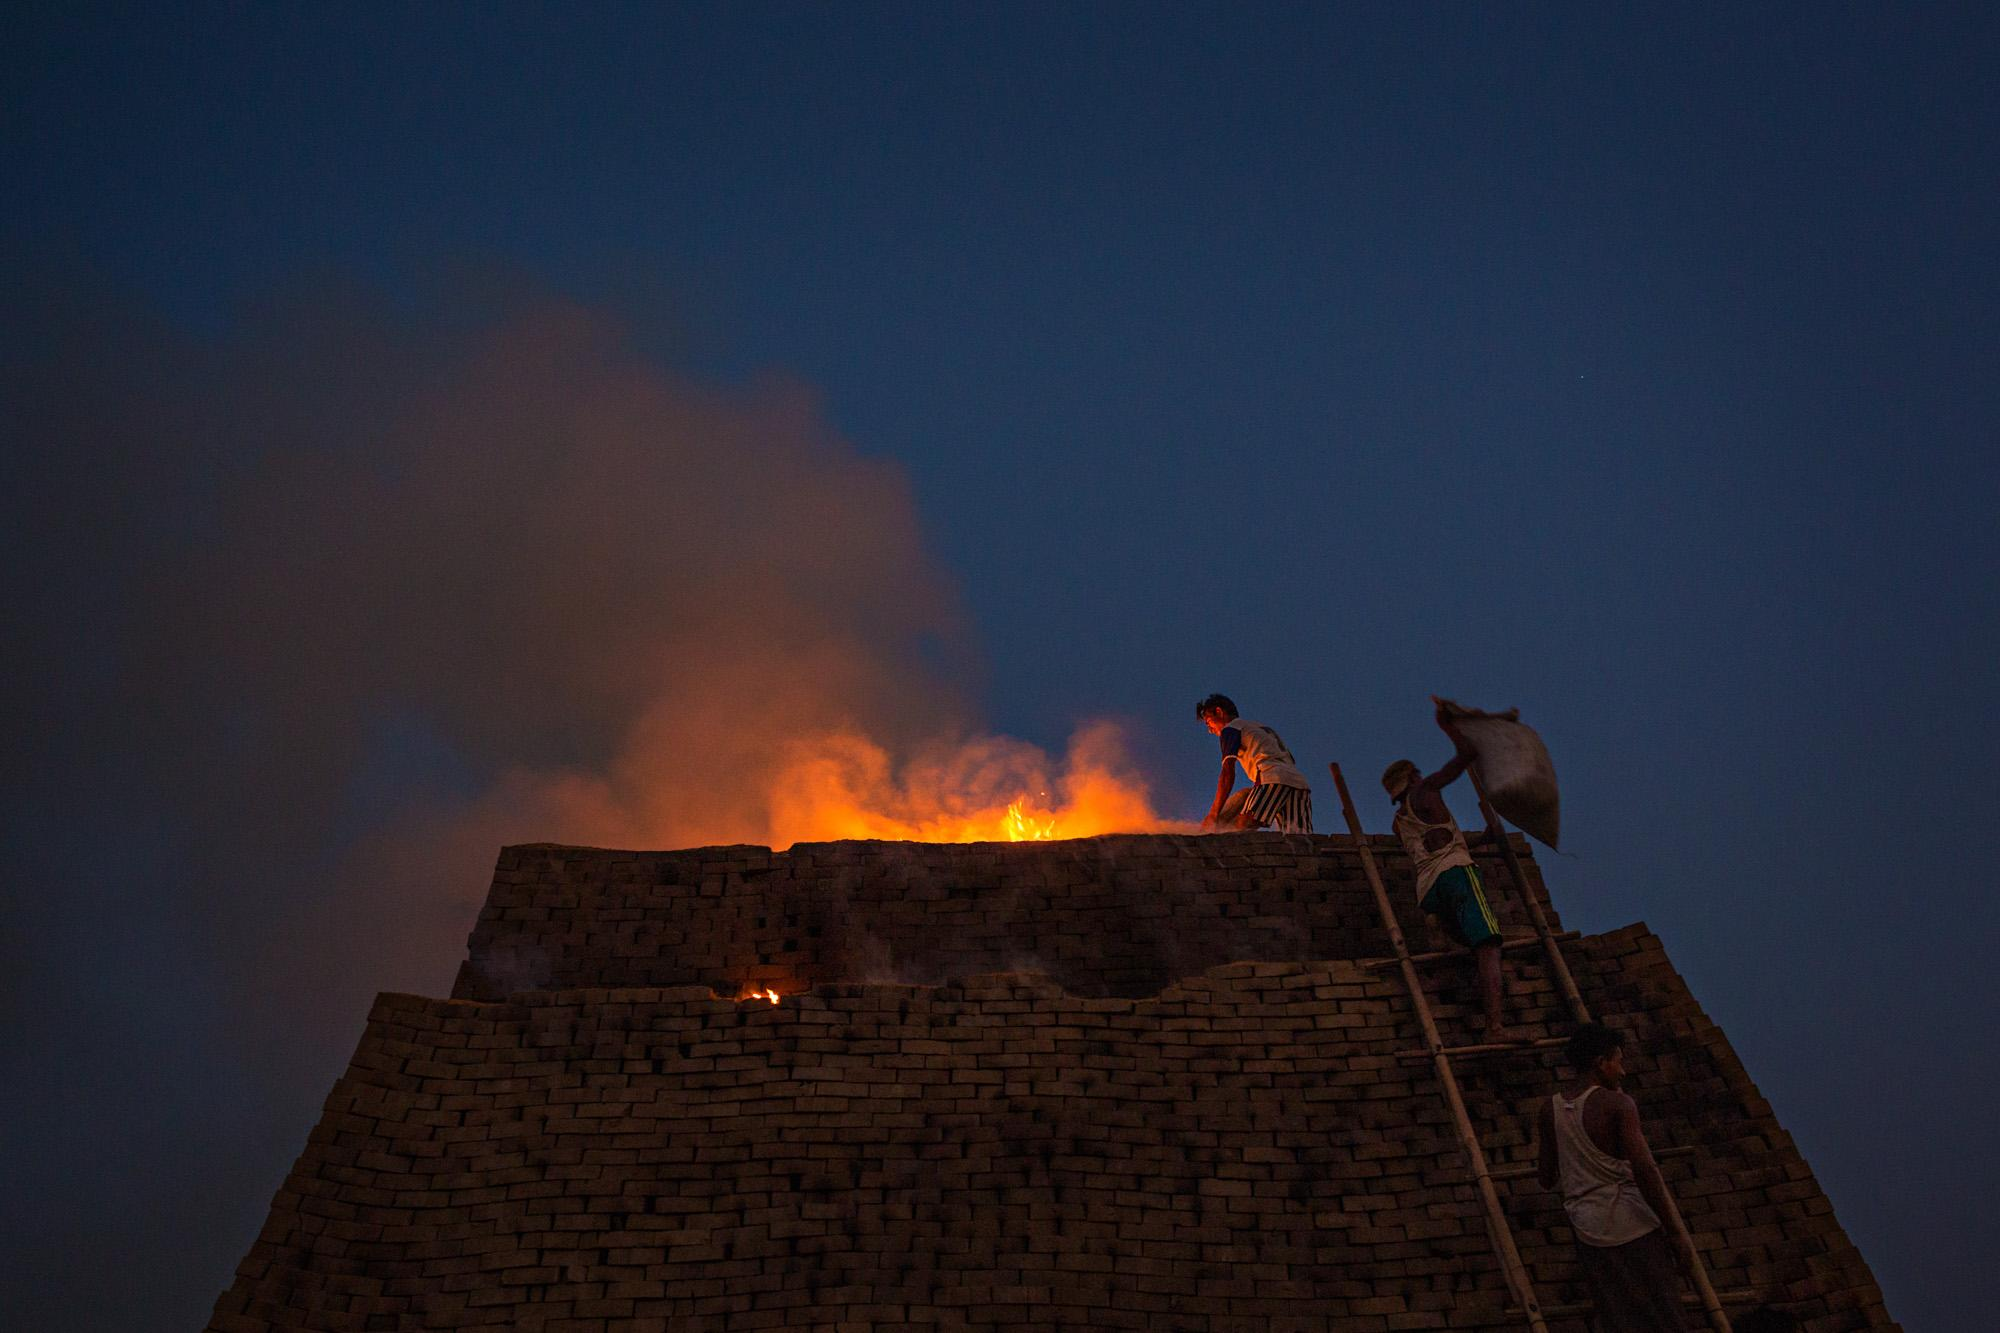 A brick kiln burns late into the night on the outskirts of Yangon, Myanmar.